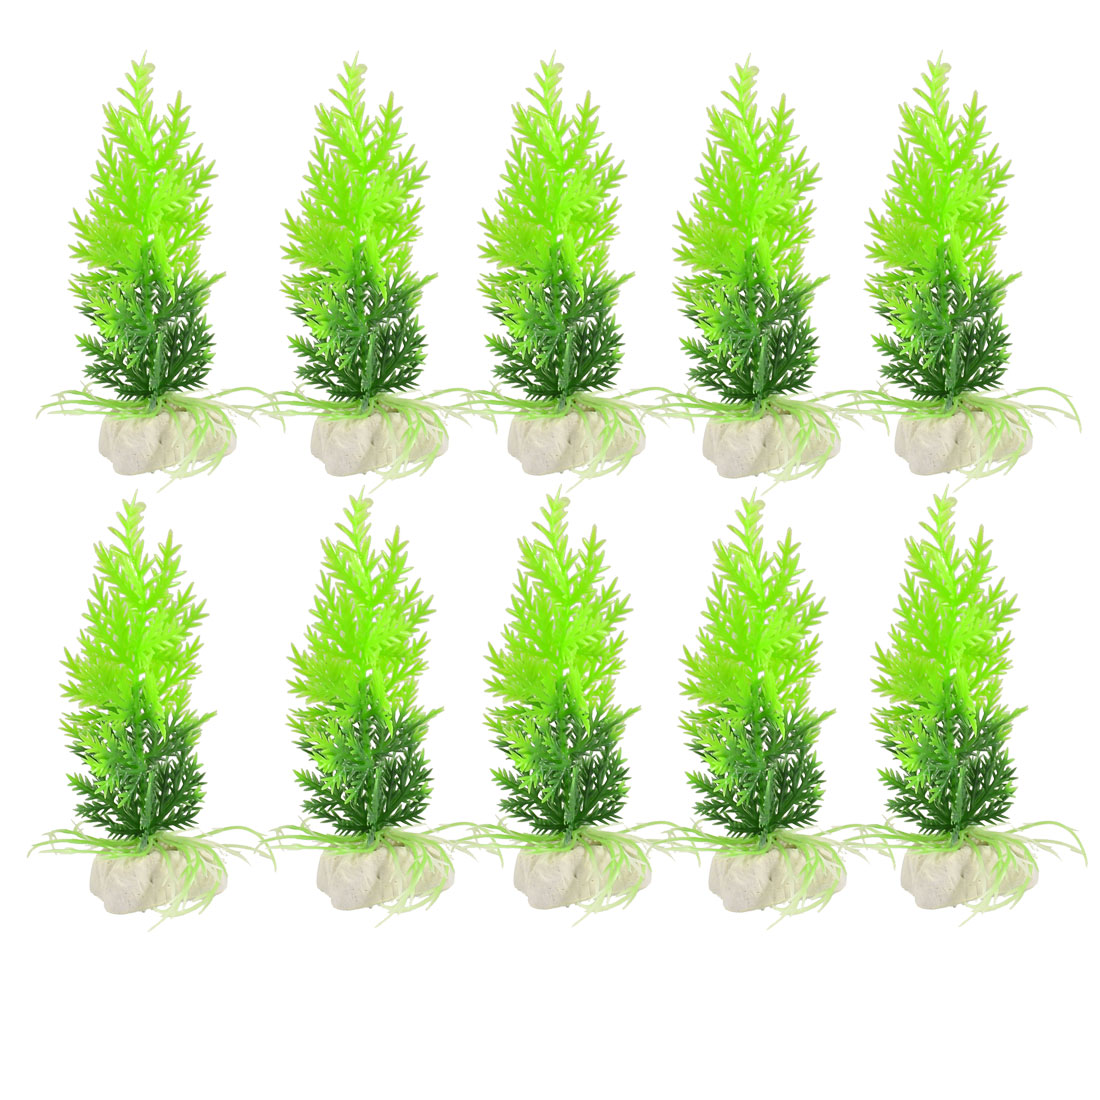 Aquarium Landscaping Artificial Green Leaves Fish Tank Ornament Plants 10 Pcs